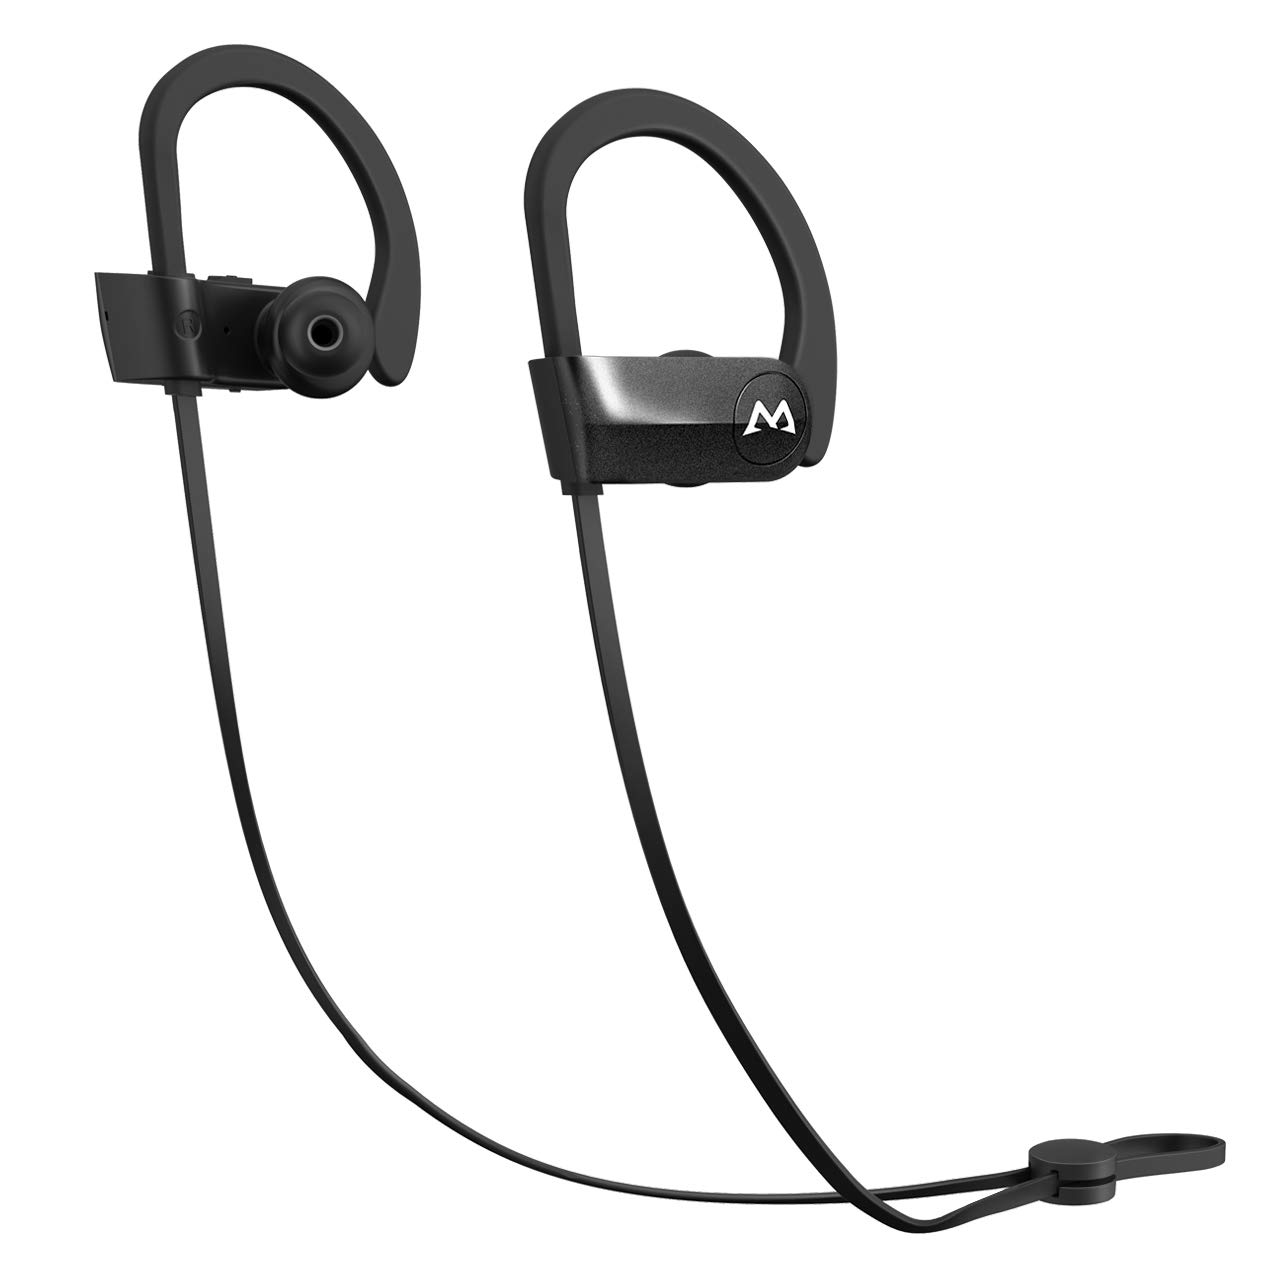 Mpow D7 Bluetooth Headphones 10 Hours Playtime, IPX7 Waterproof Wireless Sports Earbuds w/Noise Cancelling Mic, Sport Earphones for Running, Workout